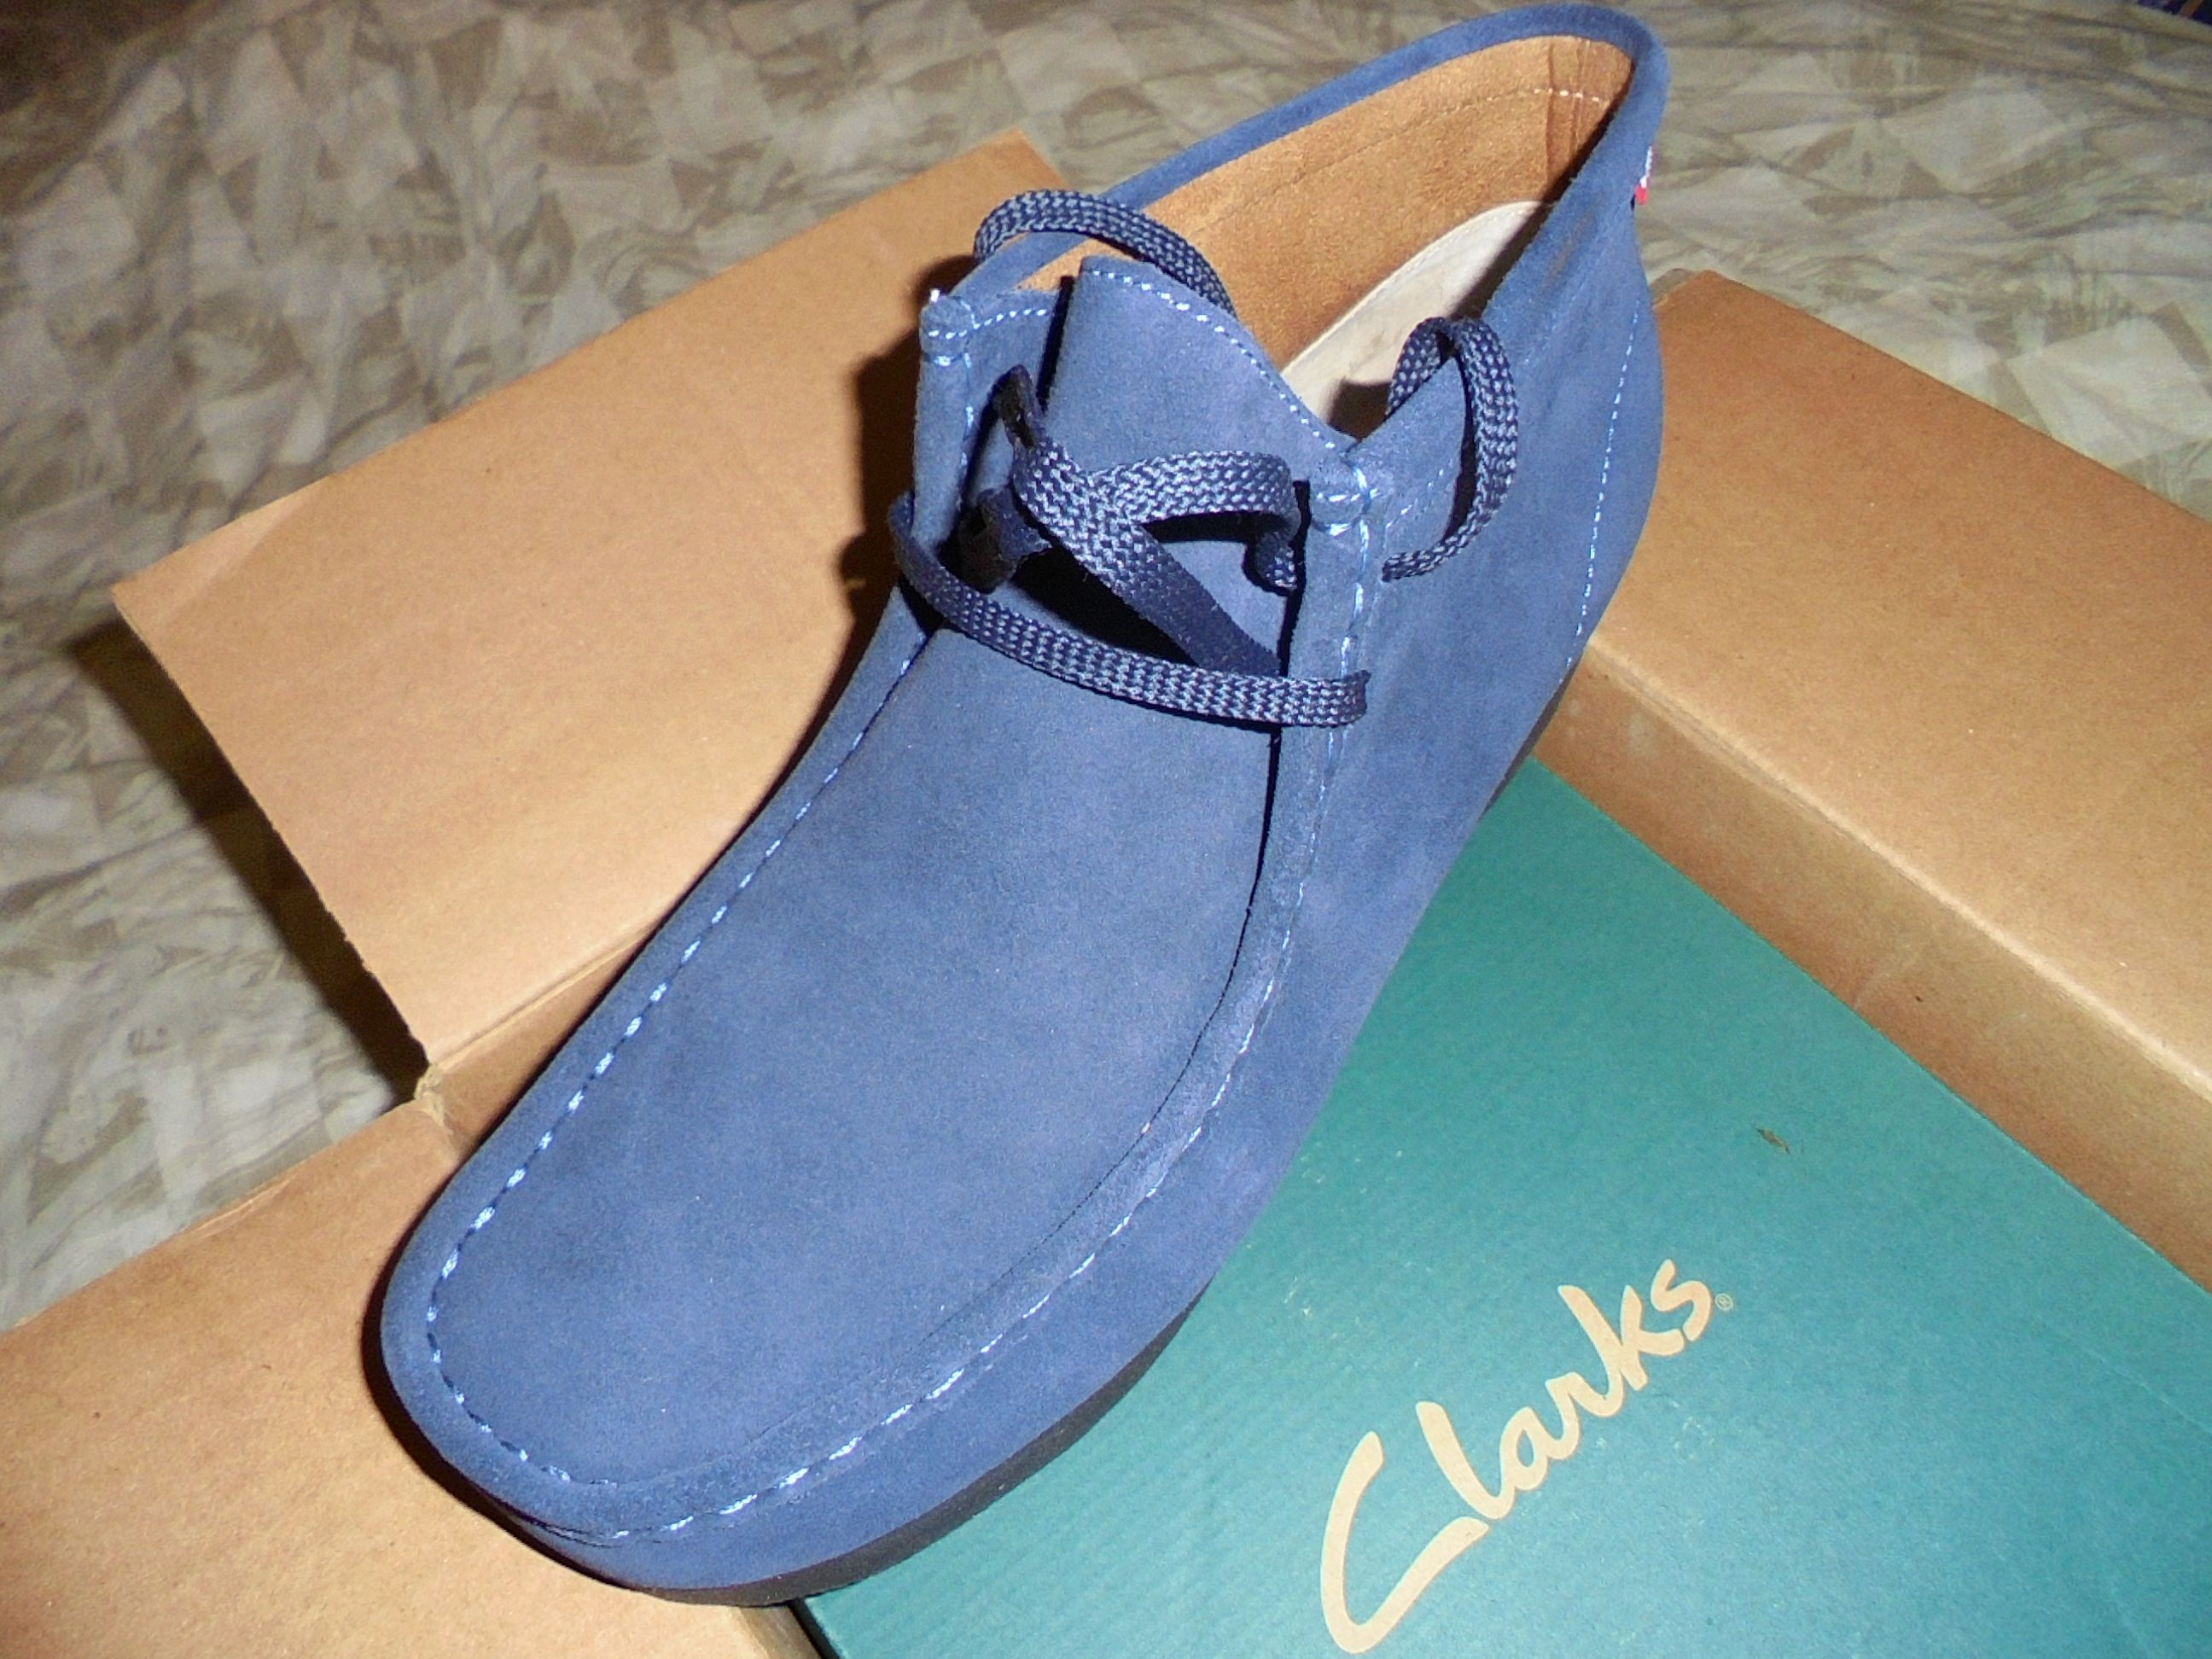 #WallabeePadmores #frontandcenter by #Clarks - www.drewrynewsnetwork.com/forum/reviews